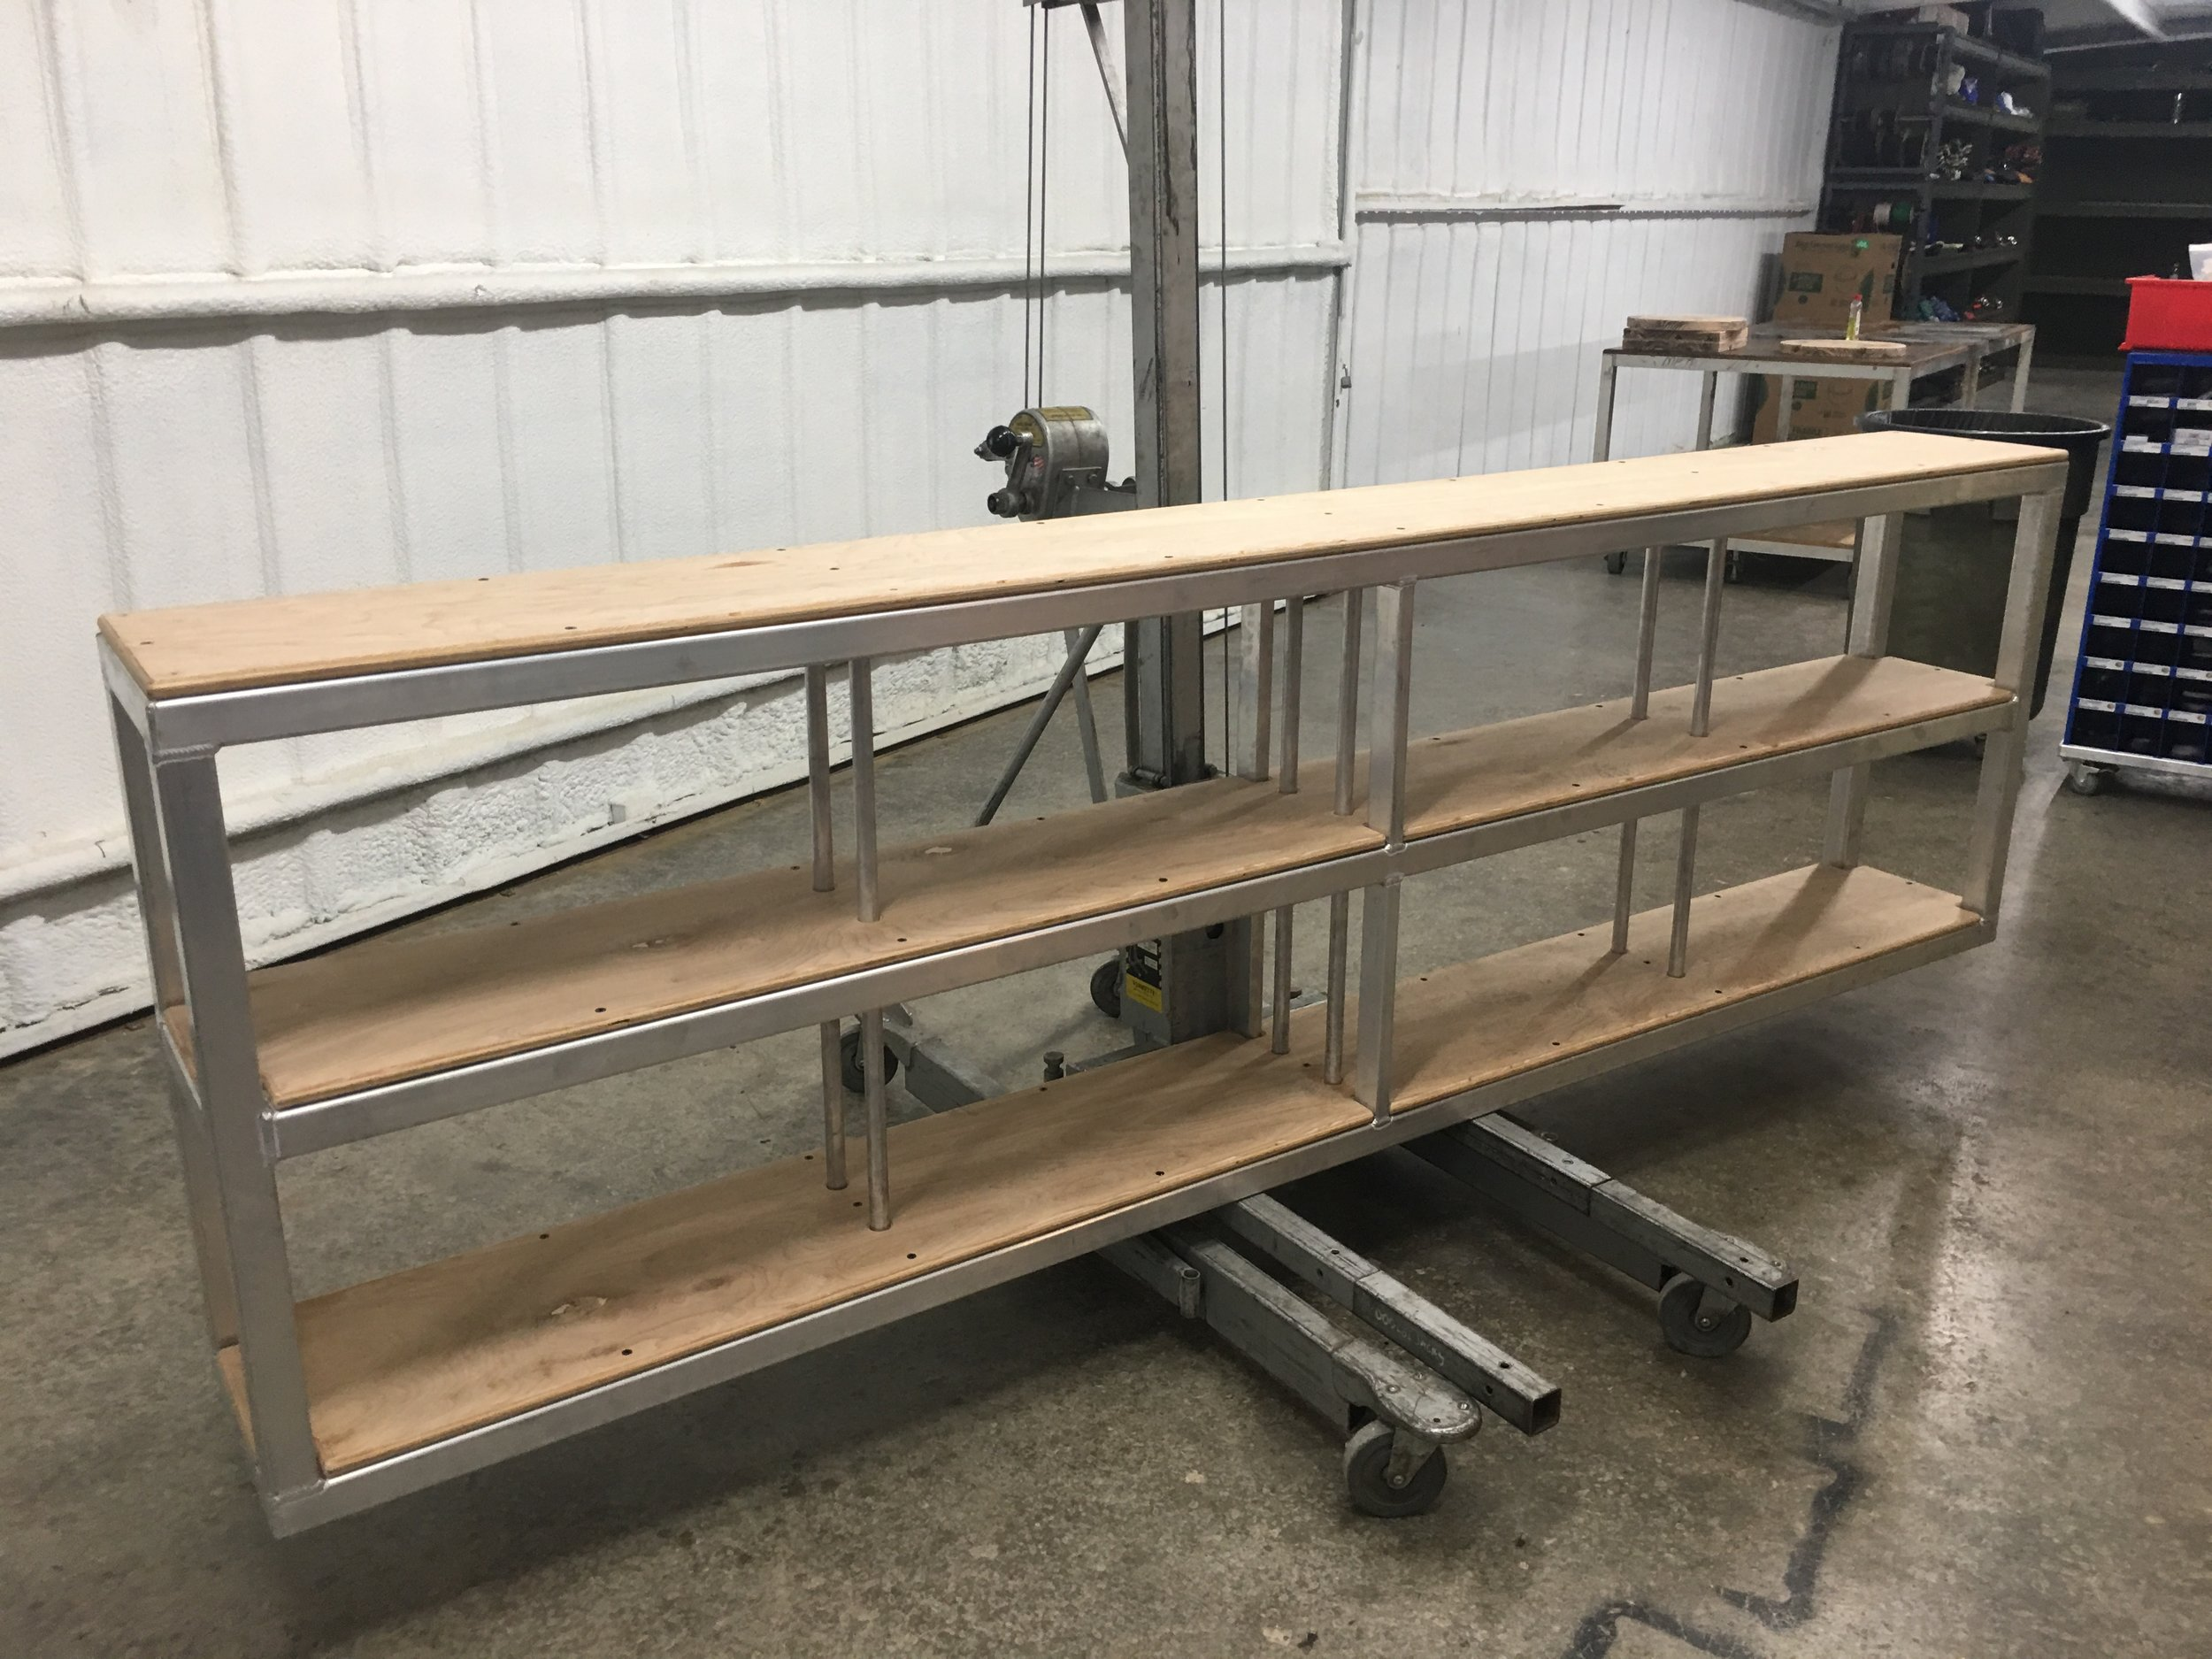 120X14X36.25 3 Shelf Unit #1.JPG